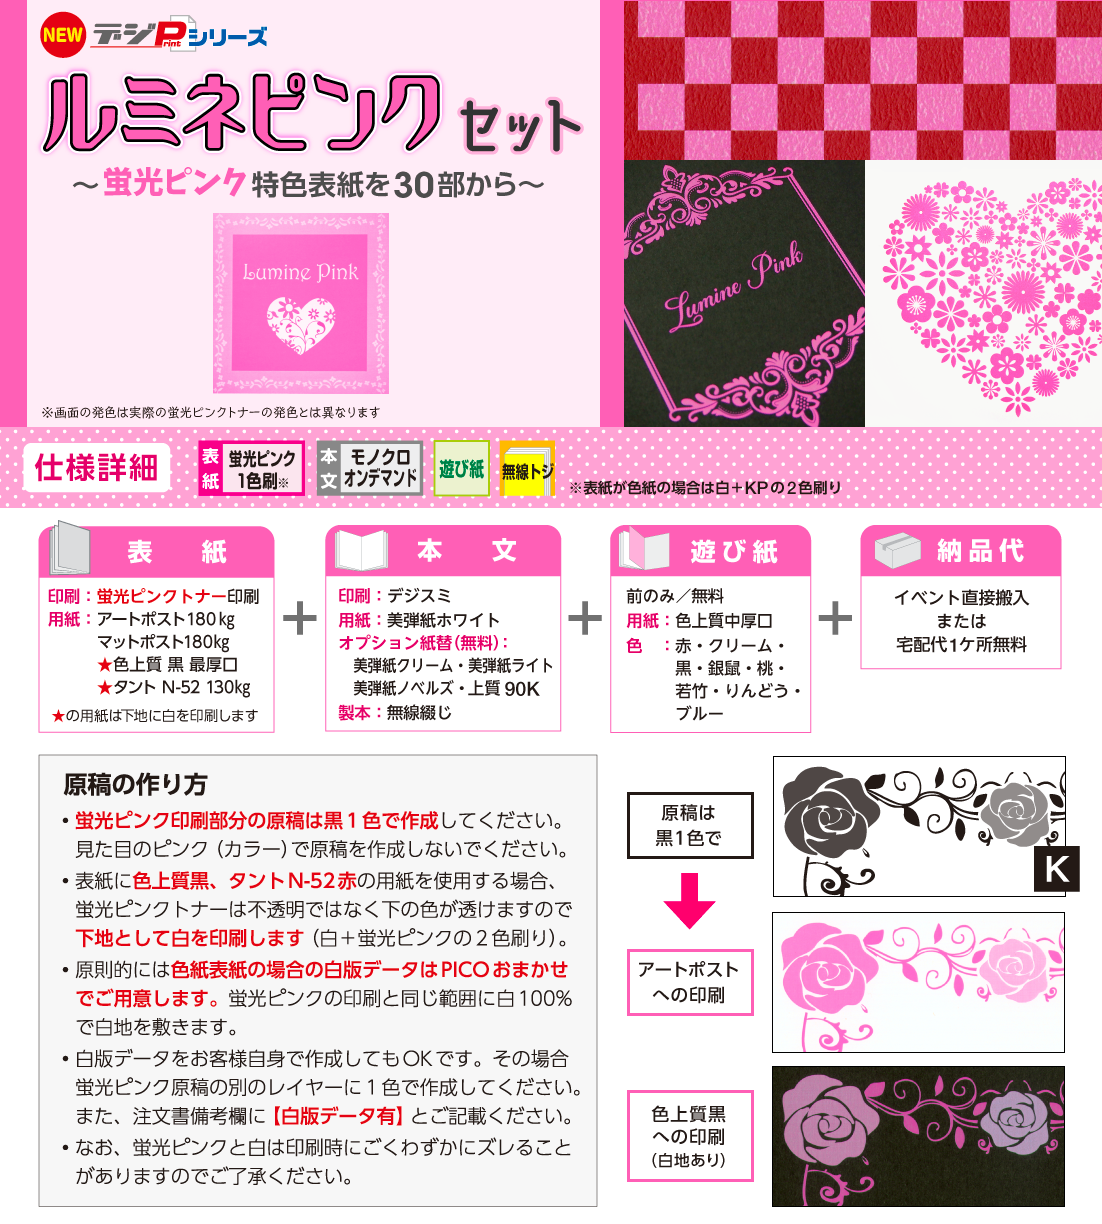 lumine_pink_info1_1102x1224.png